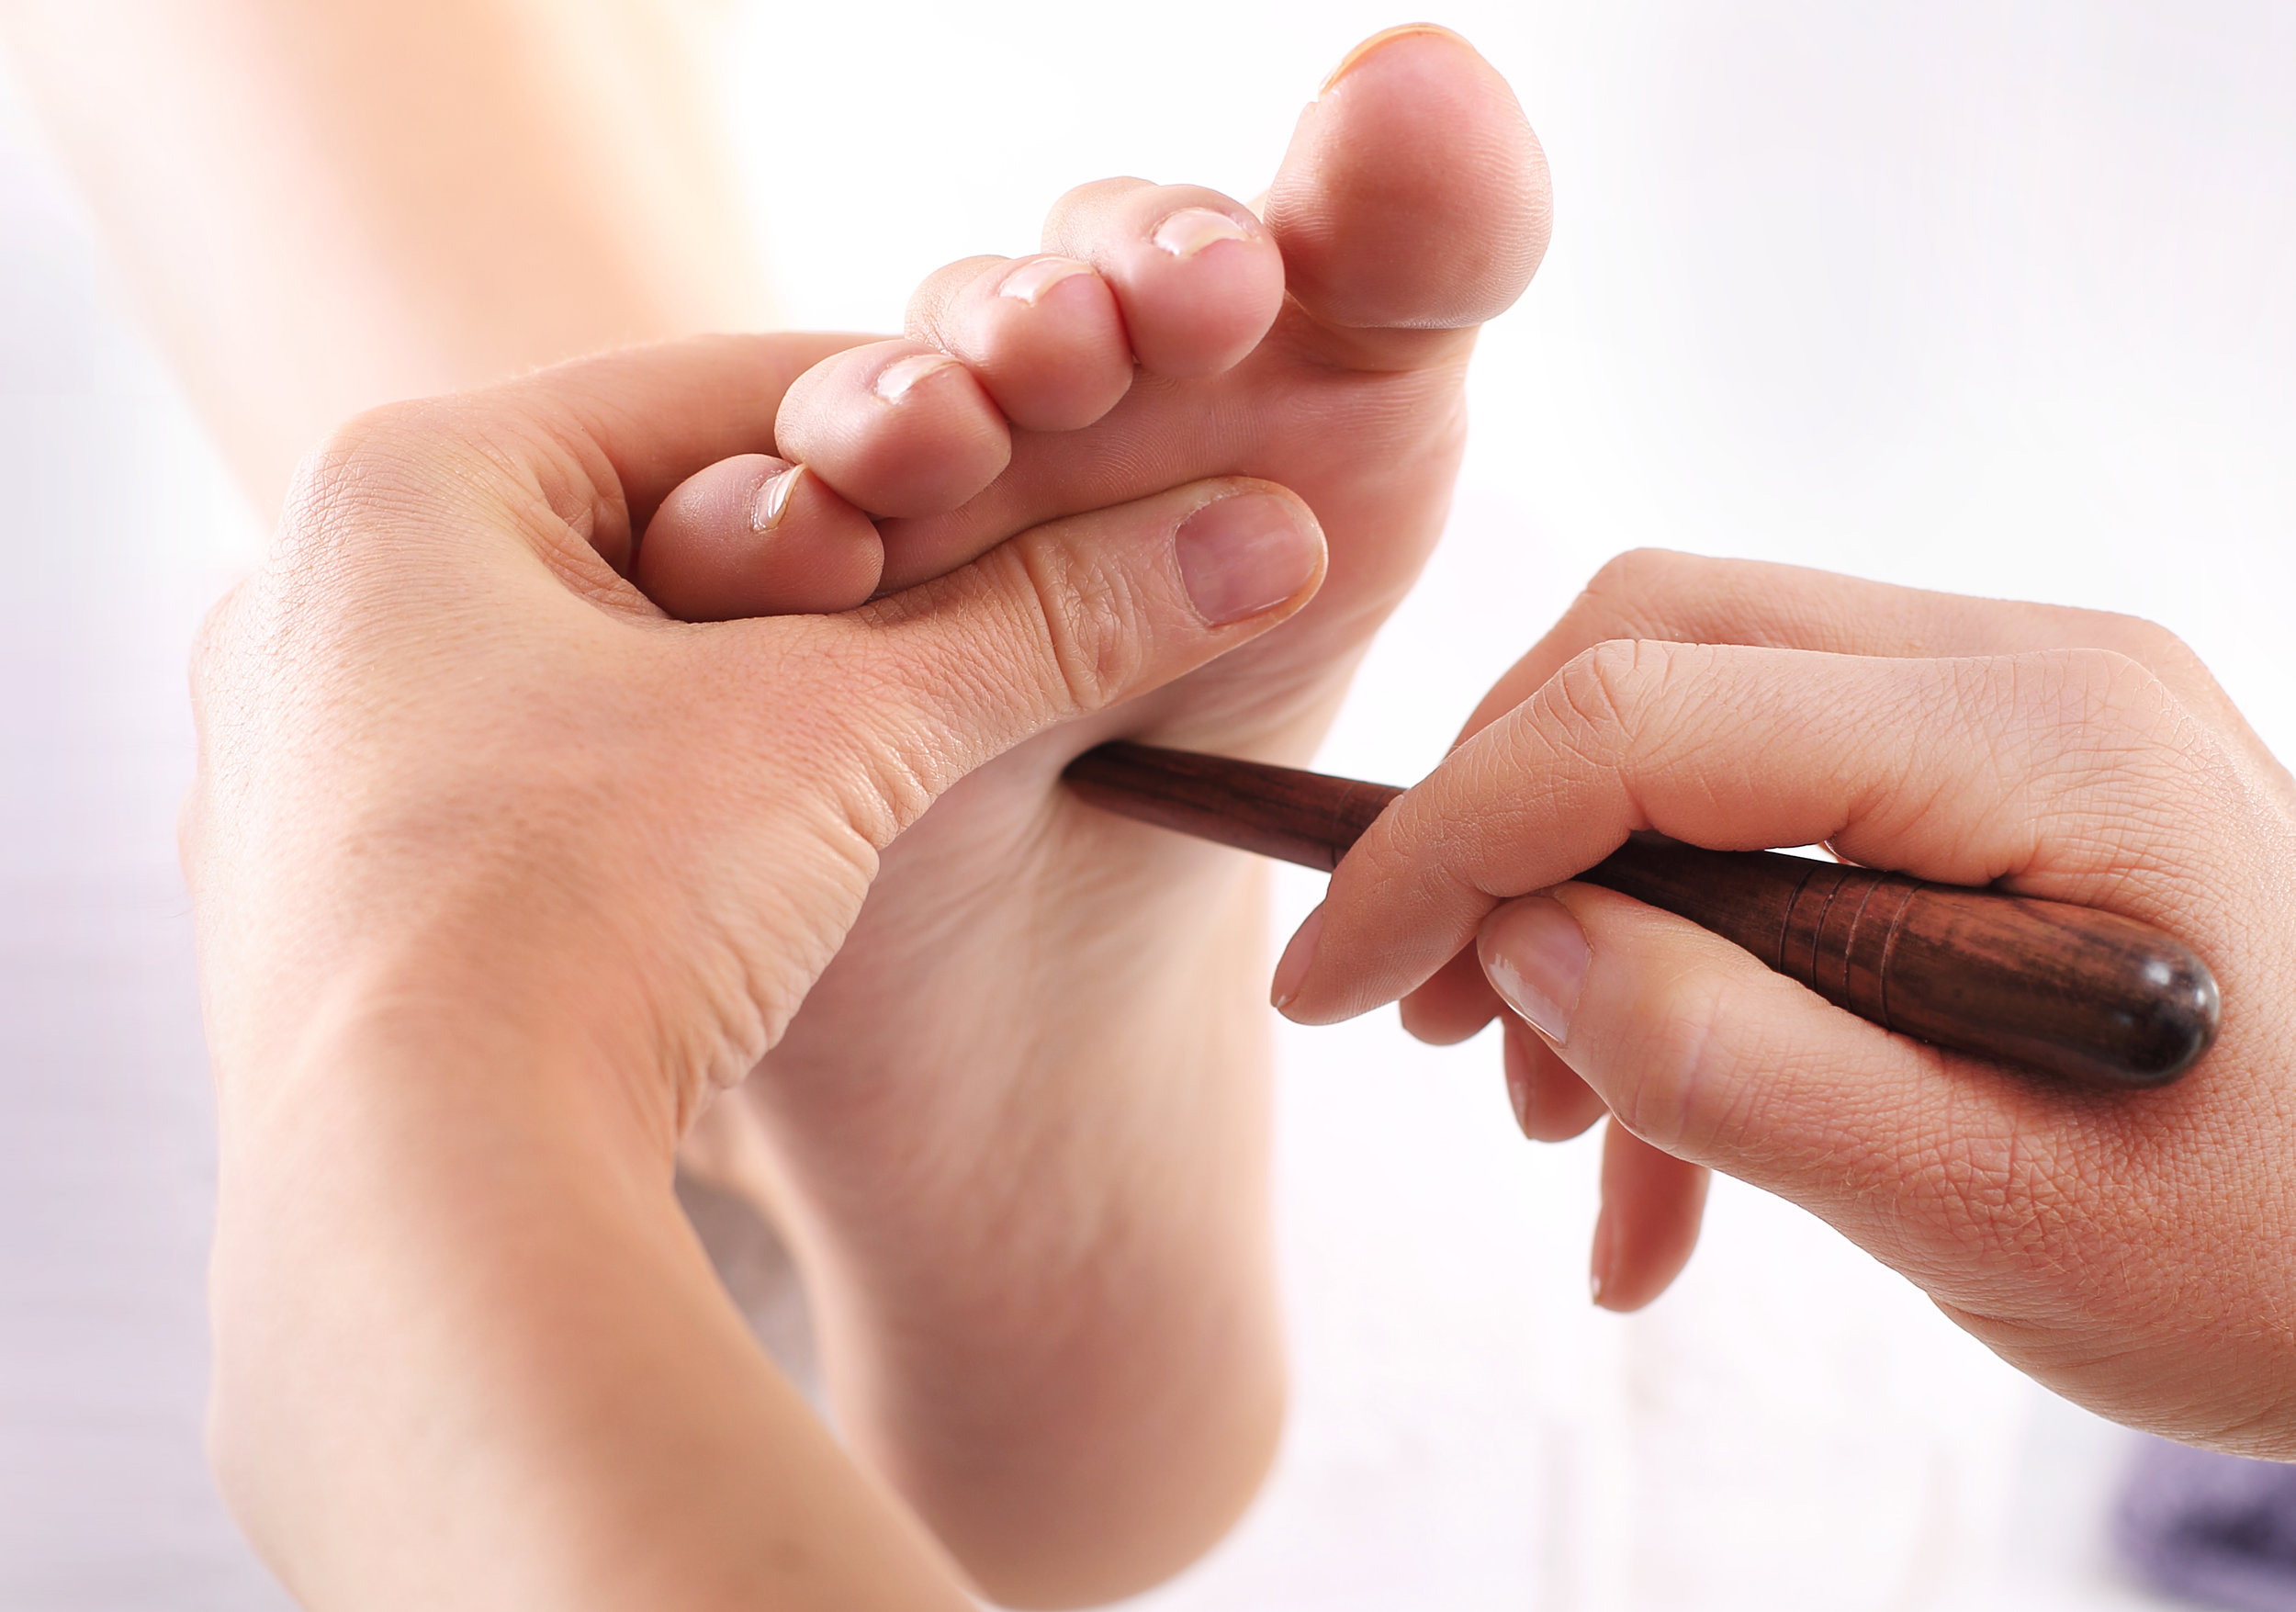 2 EFFECTIVE REFLEXOLOGY POINTS TO REDUCE STRESS AND ANXIETY AND INCREASE WELLBEING